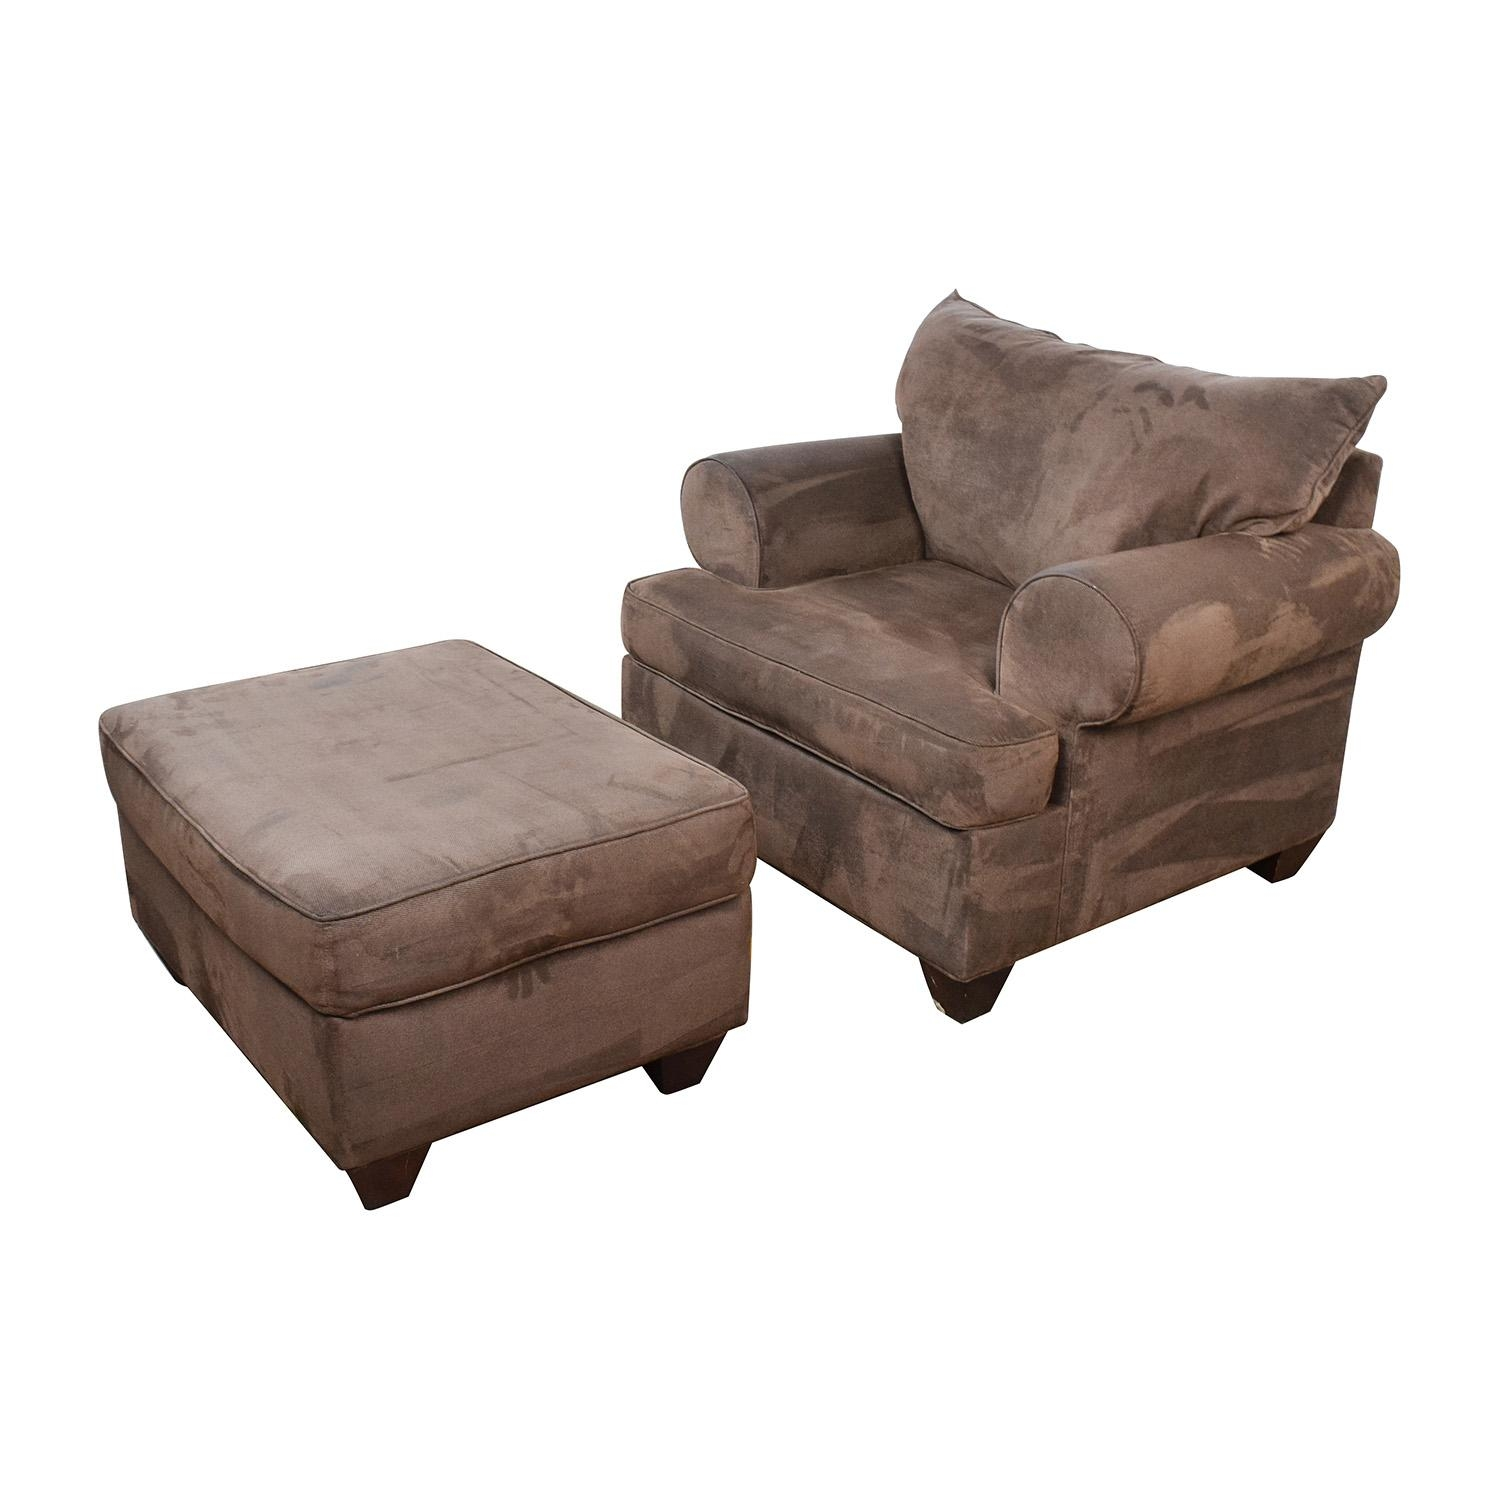 67% Off - Dark Brown Sofa Chair With Ottoman / Chairs throughout Brown Sofa Chairs